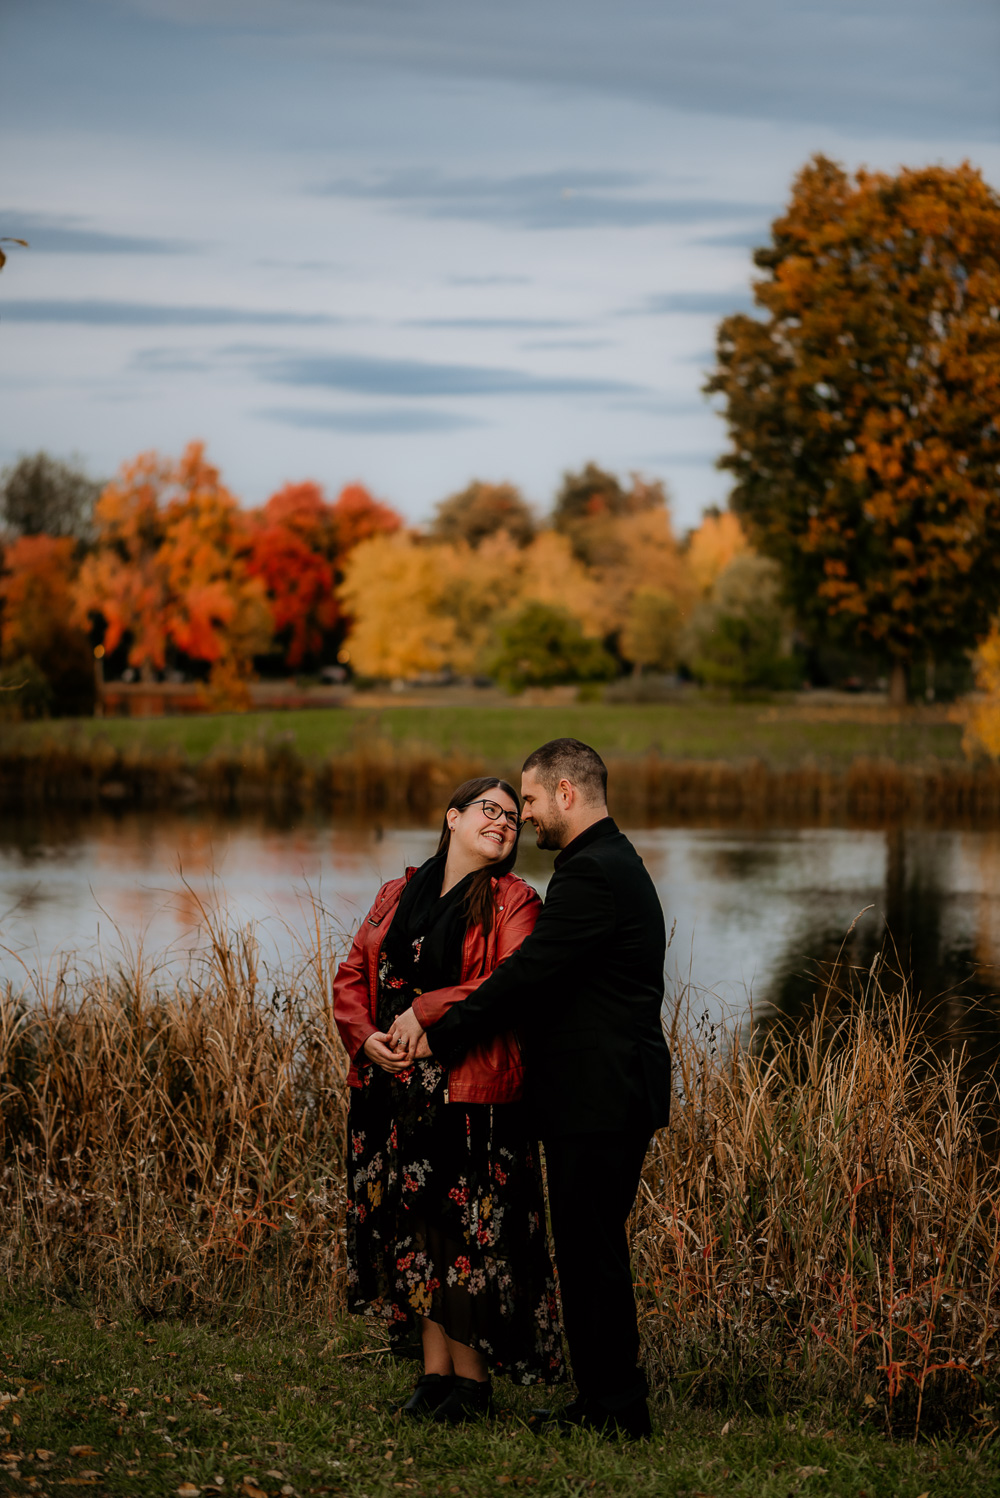 Crisp fall engagement session at Dow's lake. Couple standing with the bride having her back to the groom as they look over at each other lovingly. Beautiful fall colours in the trees surrounding them. Photo taken by Samantha Danis Photography.